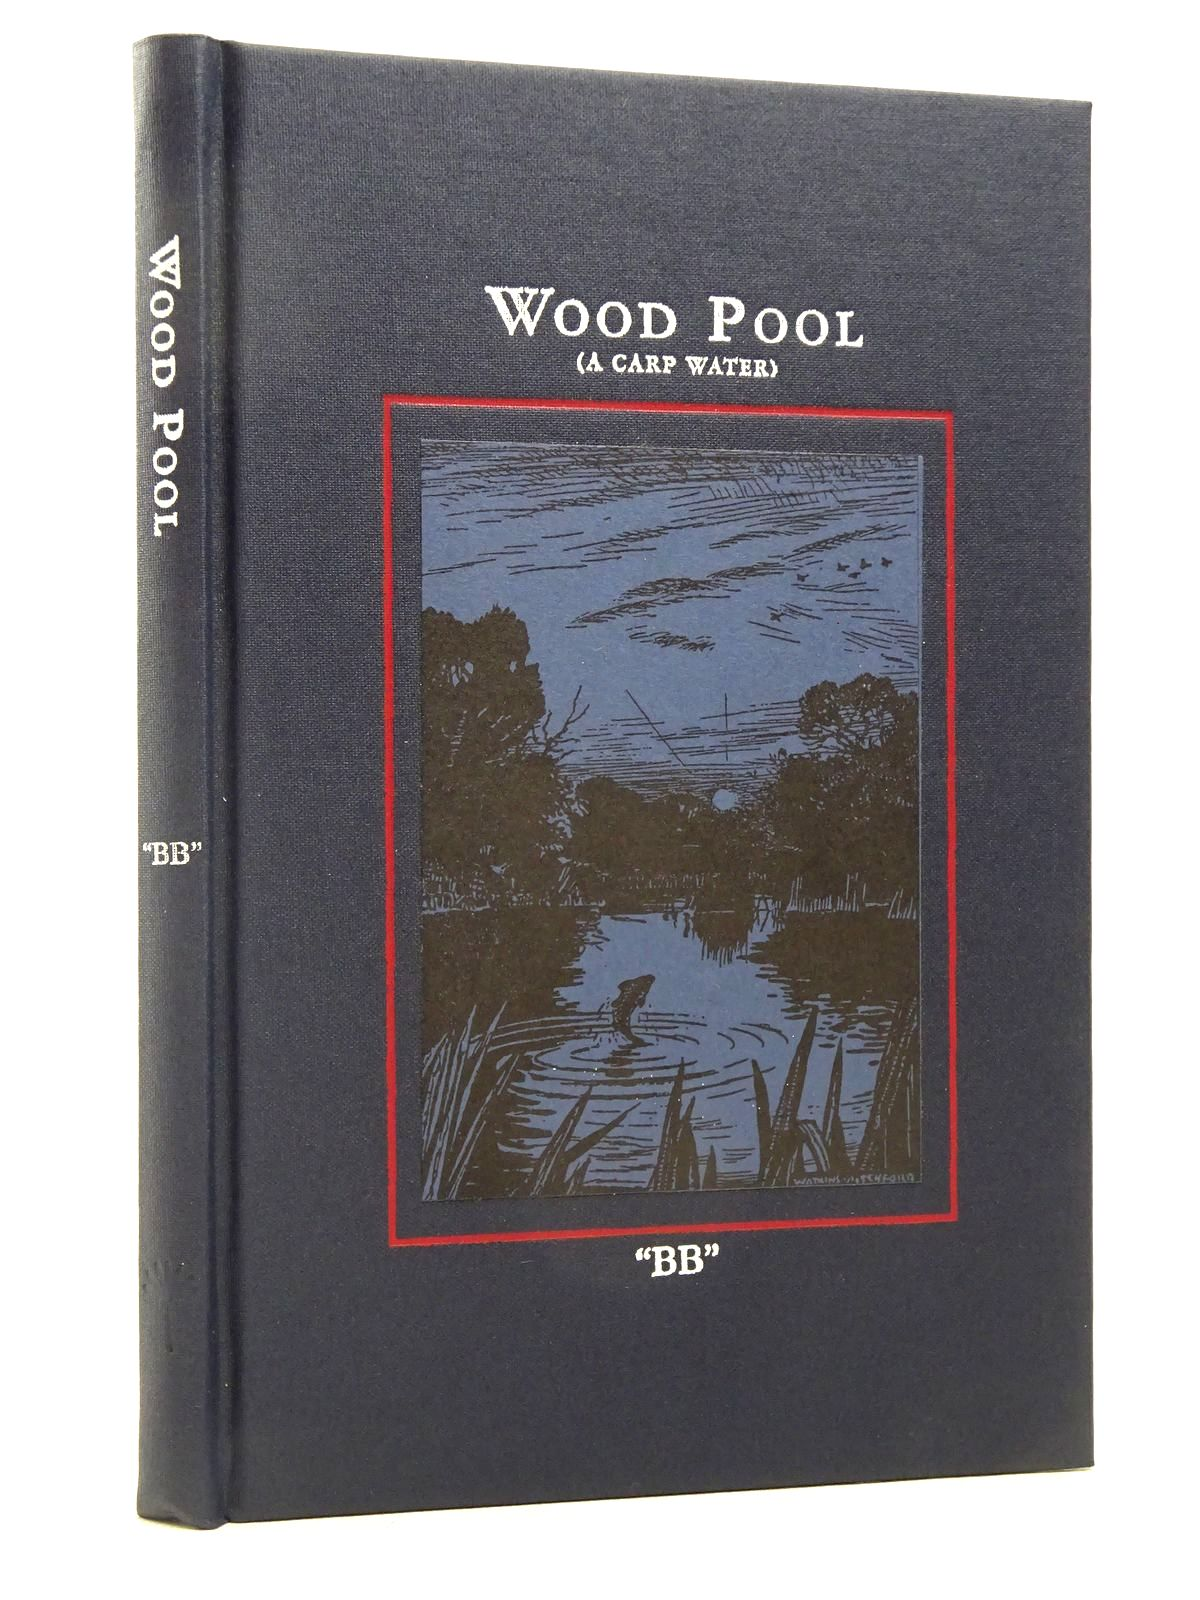 Photo of WOOD POOL (A CARP WATER) written by BB, illustrated by BB, published by The Medlar Press (STOCK CODE: 1817245)  for sale by Stella & Rose's Books